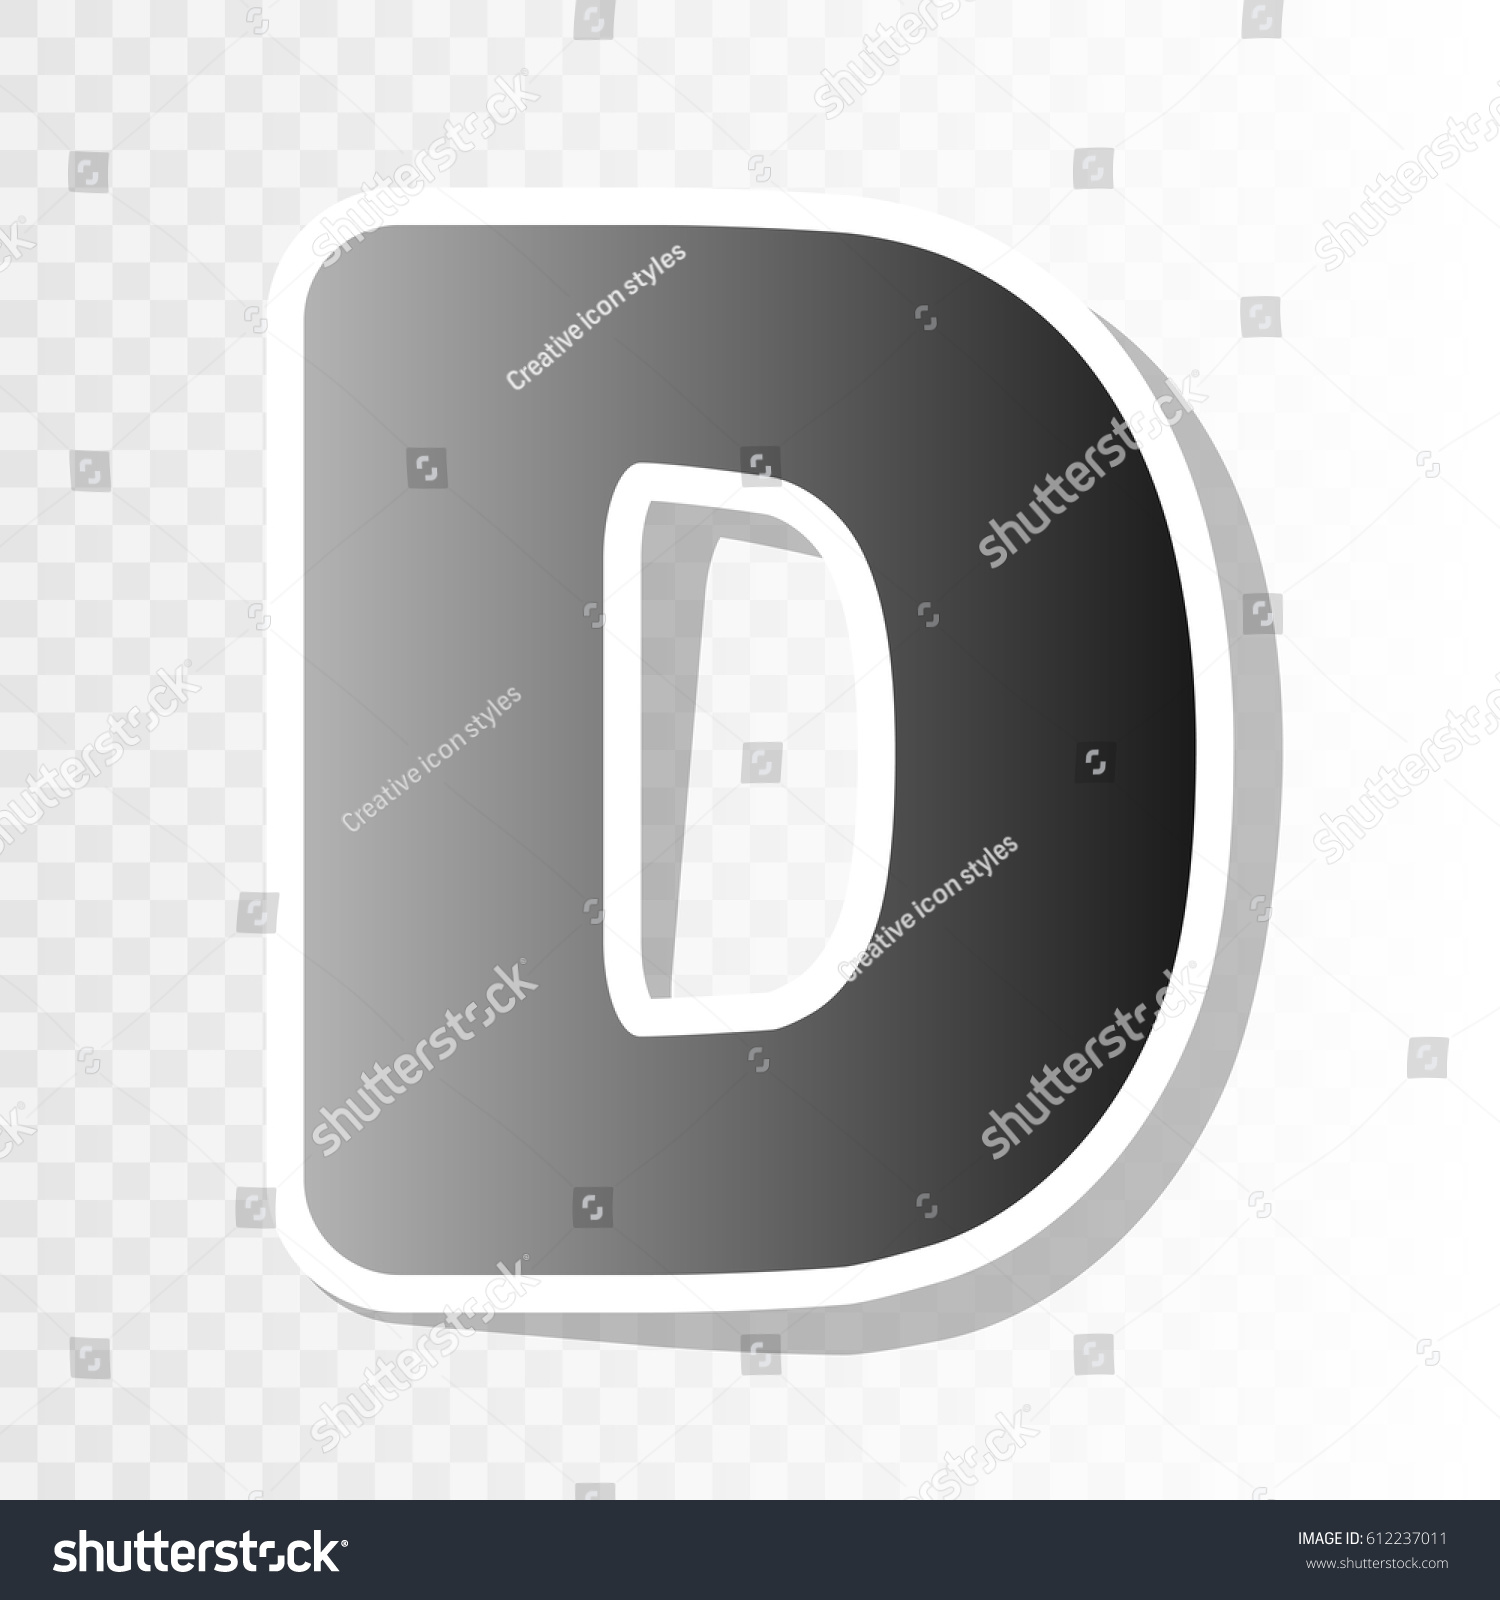 Letter D Sign Design Template Element Stock Vector (Royalty Free ...